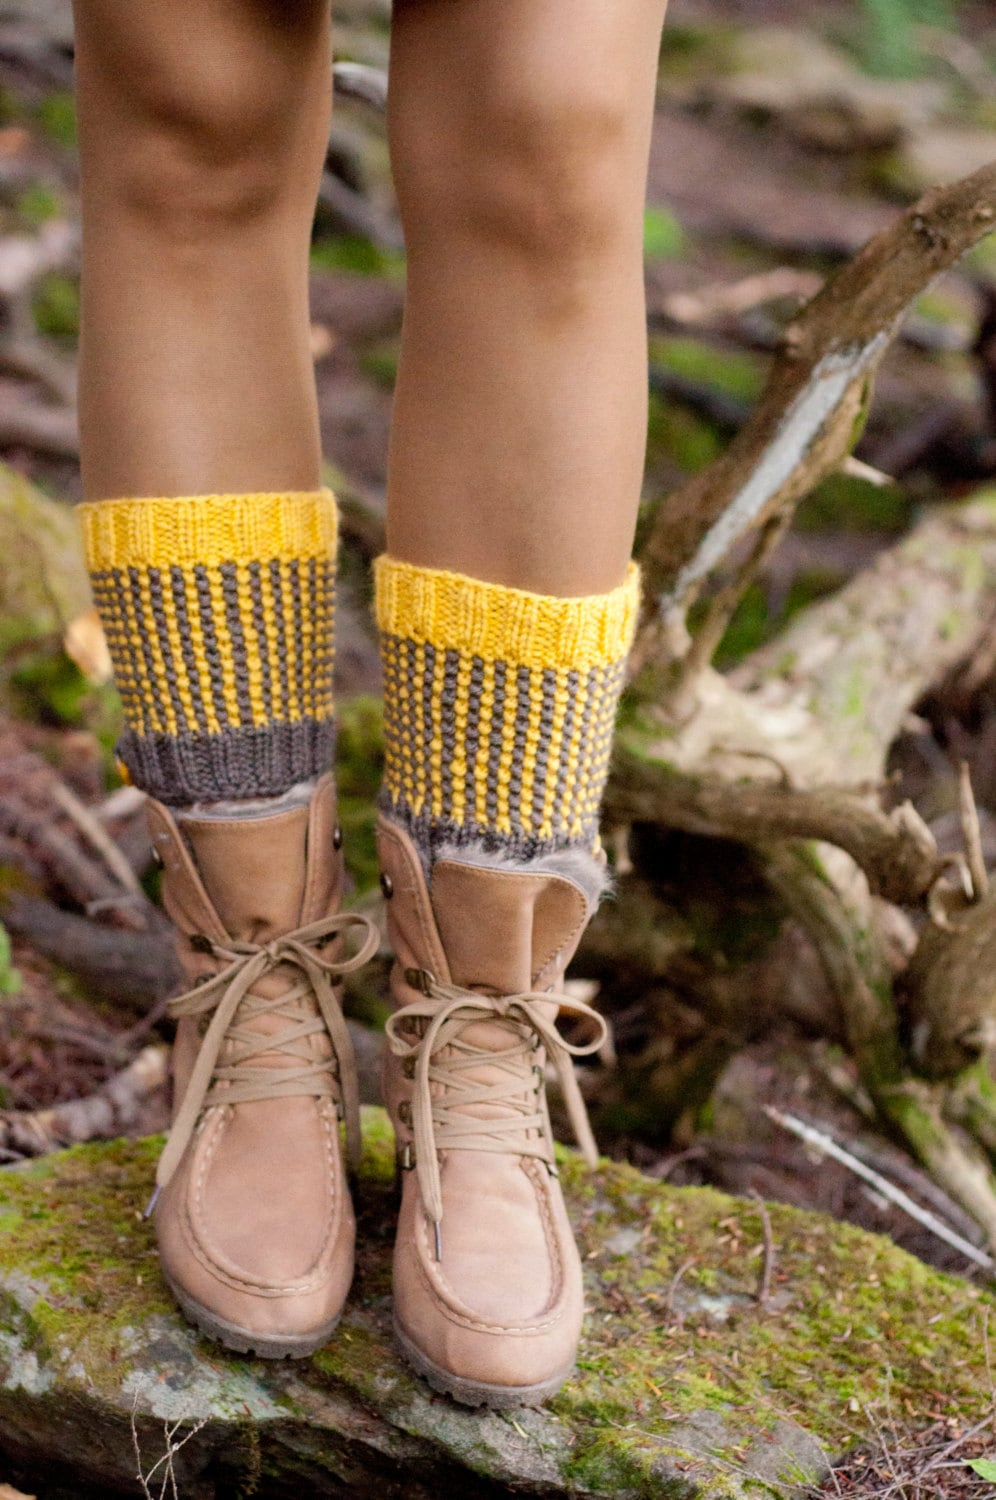 Spats, Gaiters, Puttees – Vintage Shoes Covers Two-Tone Totally Reversible Hand-Knit Boot Cuffs Chunky Texture Waffle Toppers Striped Spats Legwear Gaiters Taupe Mustard $45.00 AT vintagedancer.com